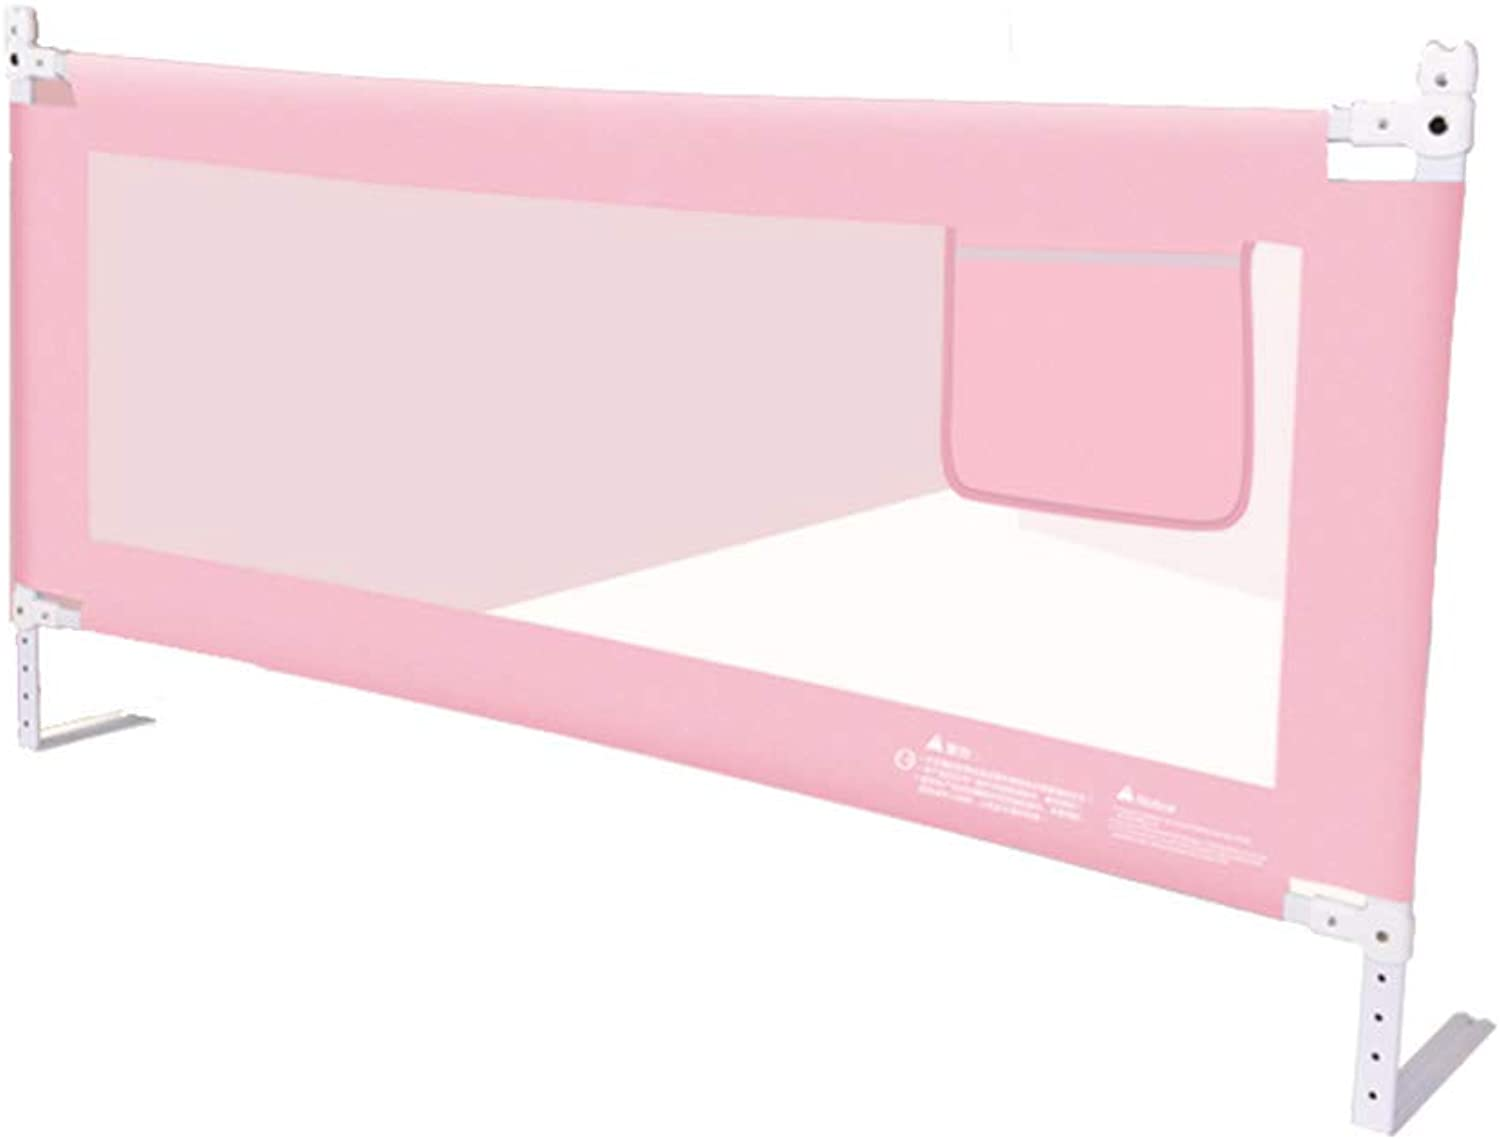 MAHZONG Bed Rails Baby and Toddler Safety Bed Rails, Foldable Crib Rails, Nylon Fabric -150cm, 180cm, 200cm80cm (color   Pink, Size   L-180cm)